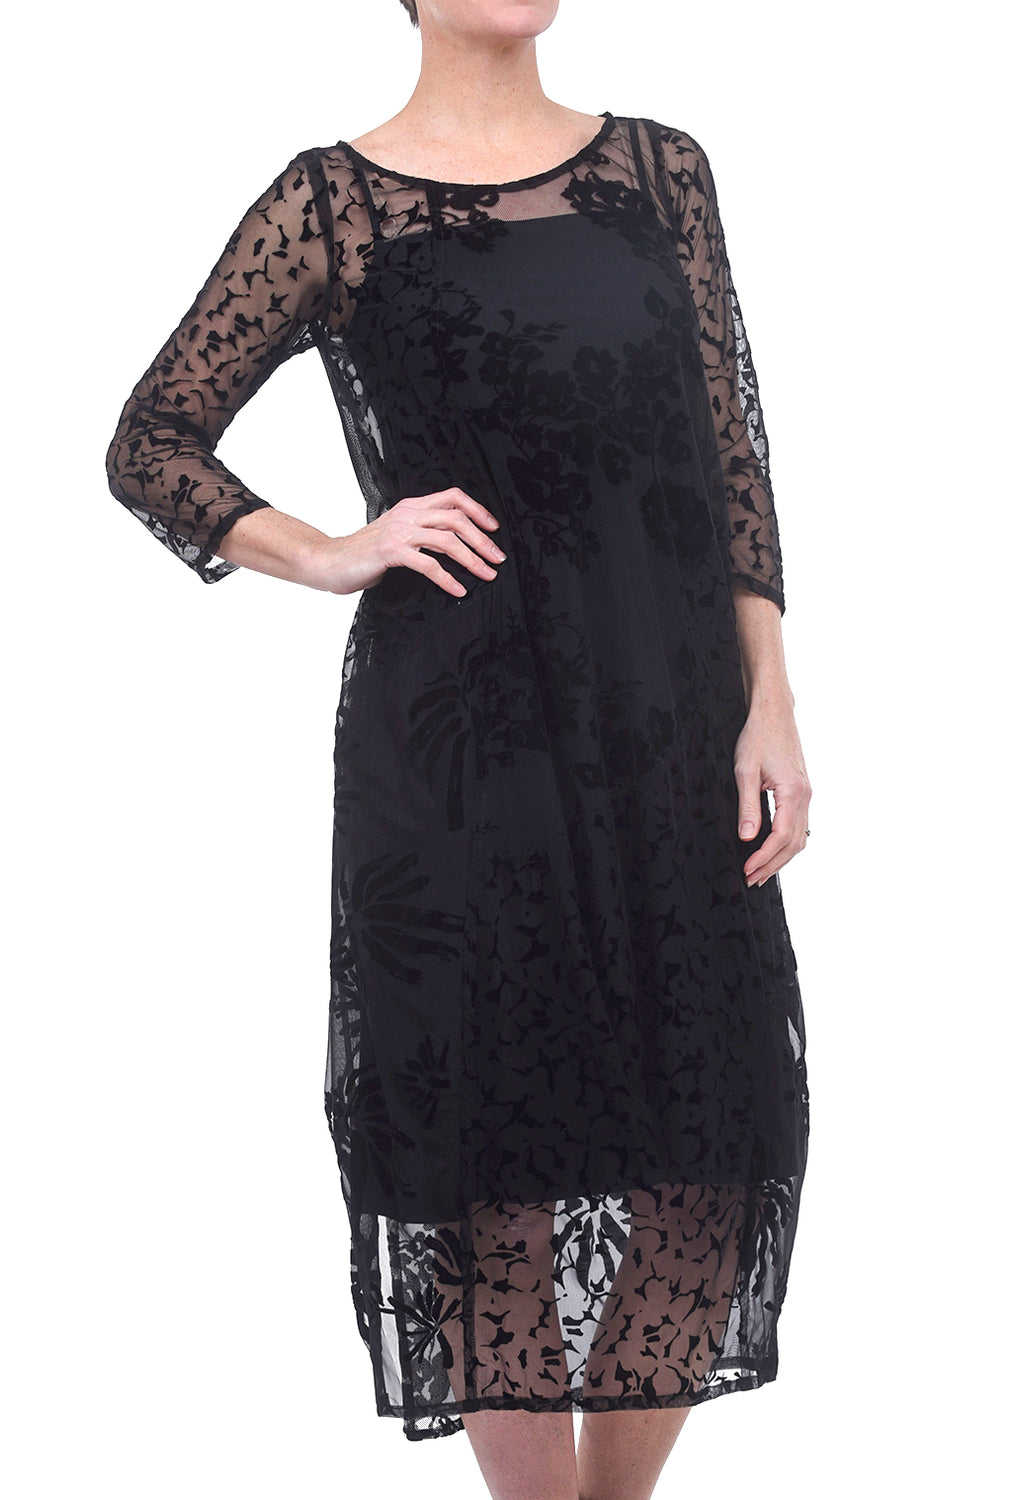 Alembika Semi-Sheer Floral Dress, Black